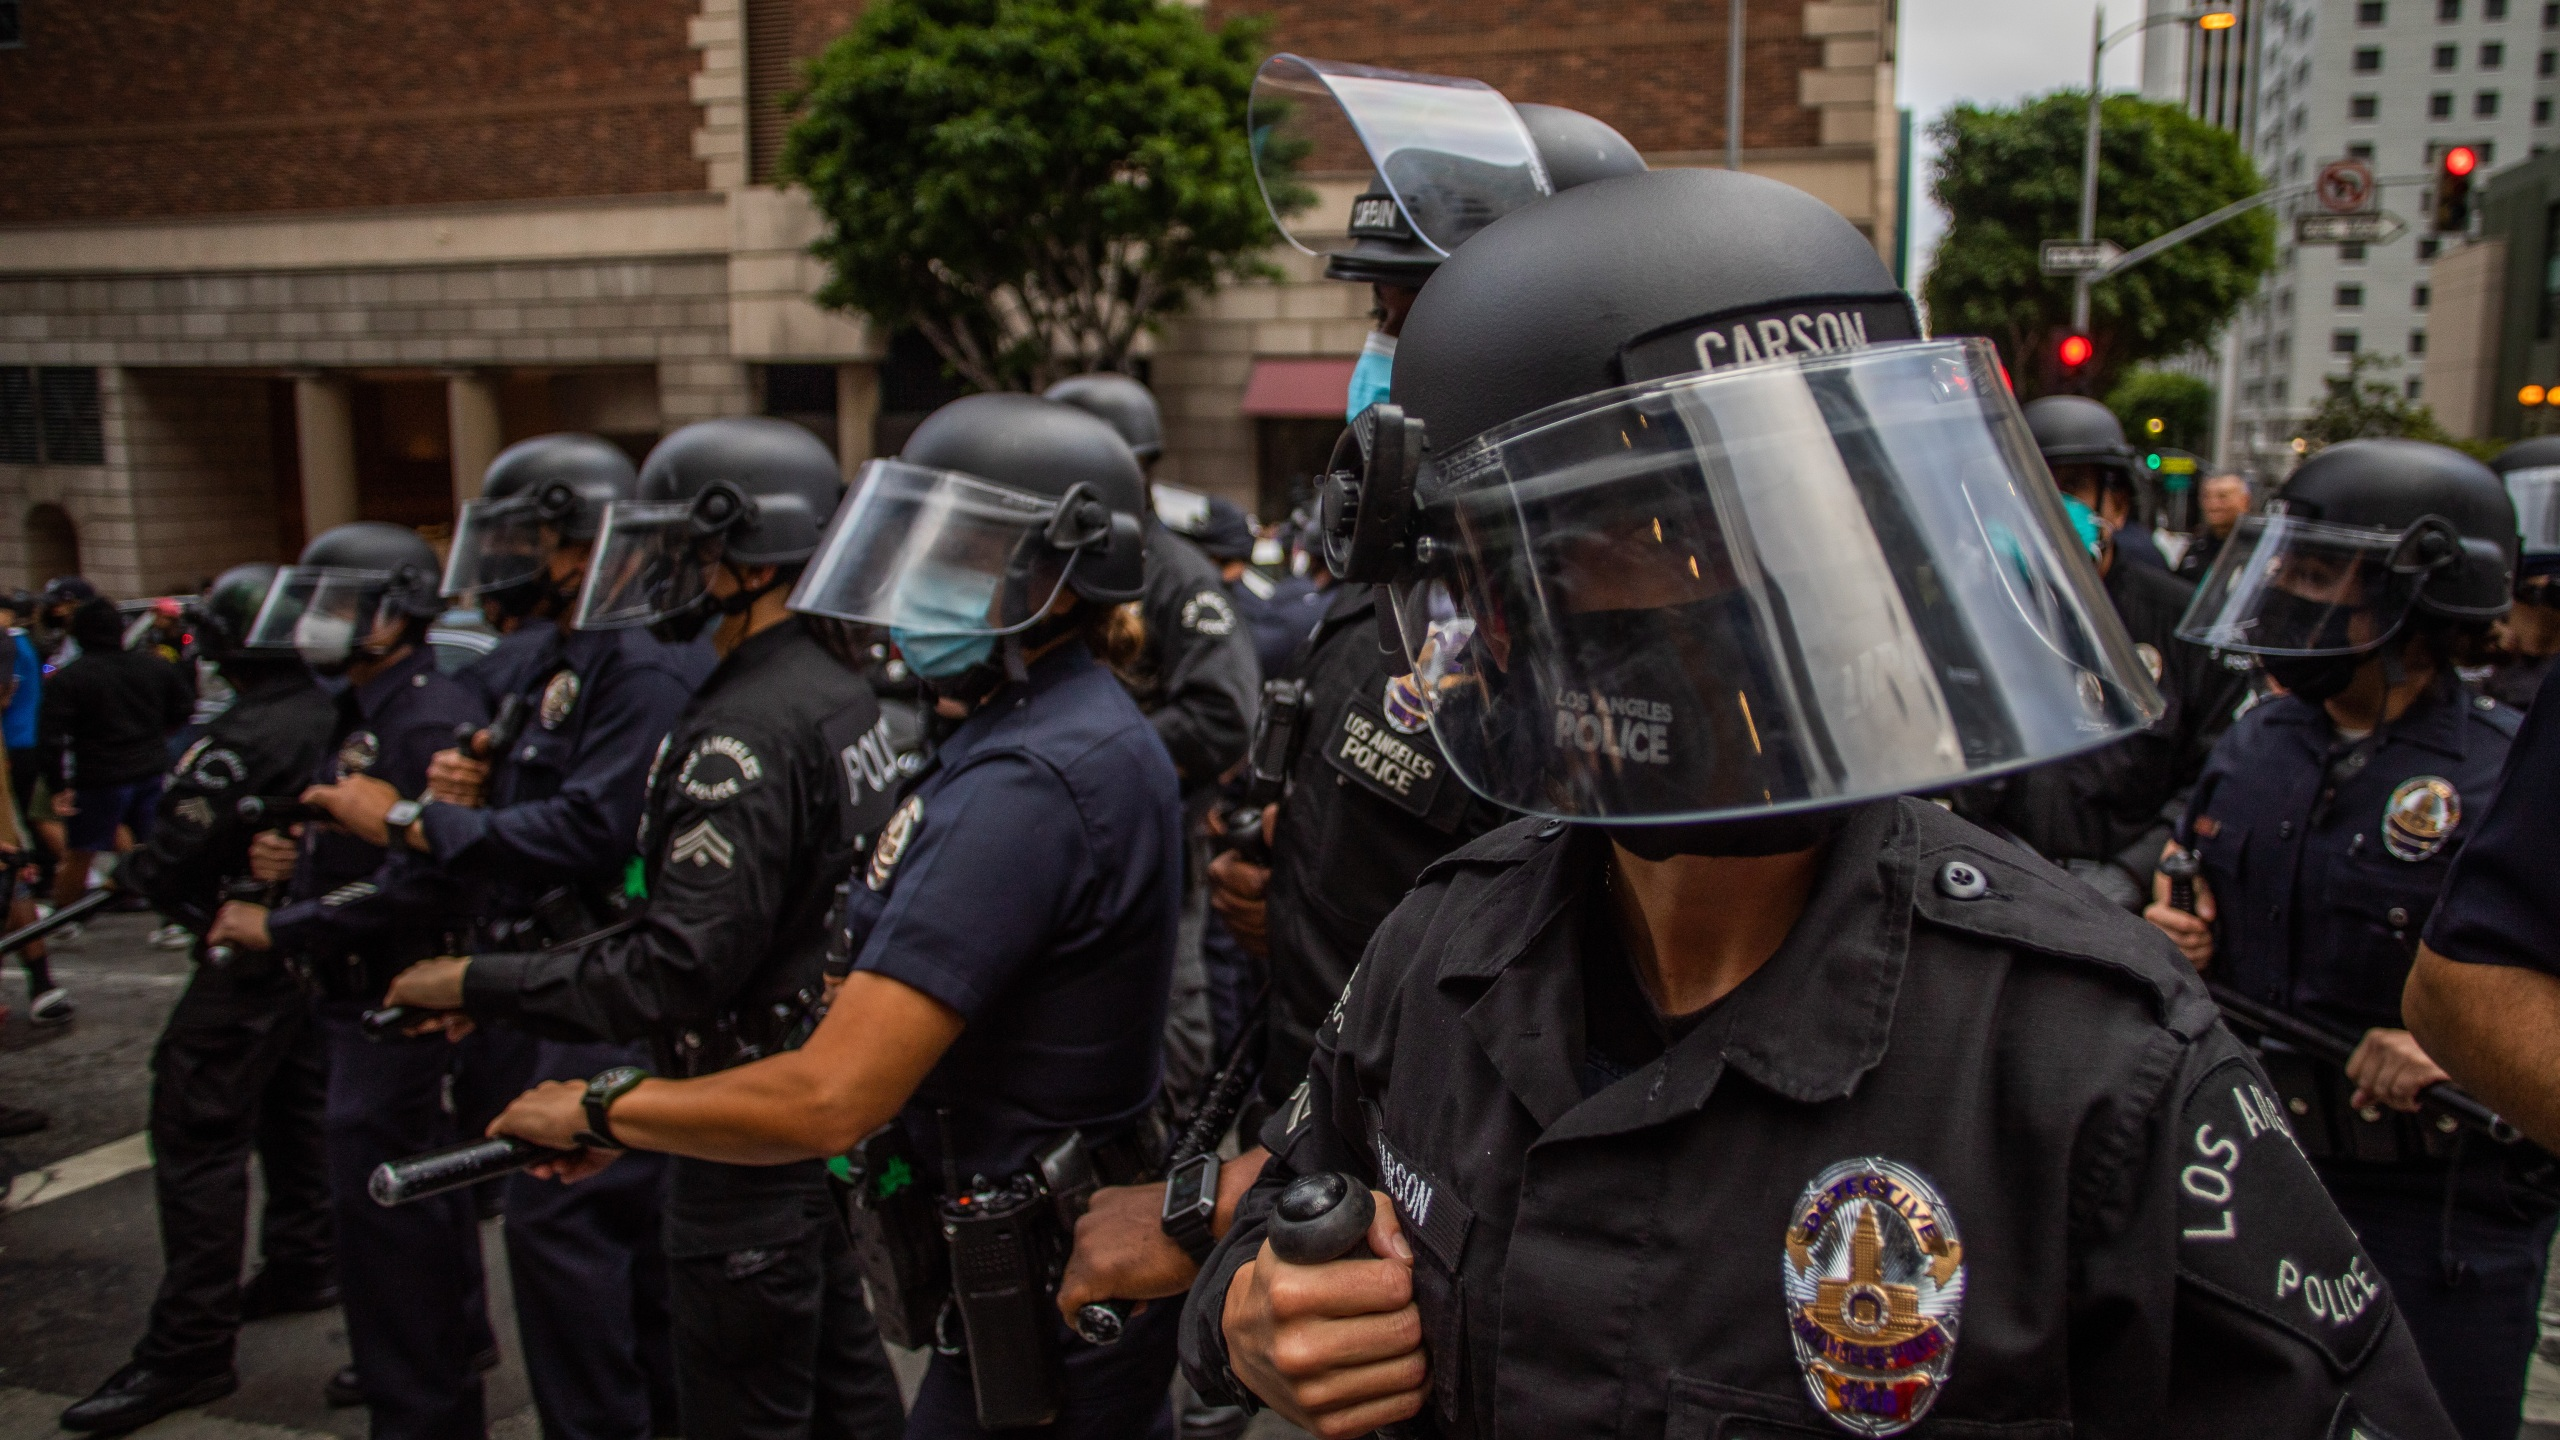 Police officers look on during a protest in response to the police killing of George Floyd on May 29, 2020 in Los Angeles, California. (Apu Gomes/Getty Images)